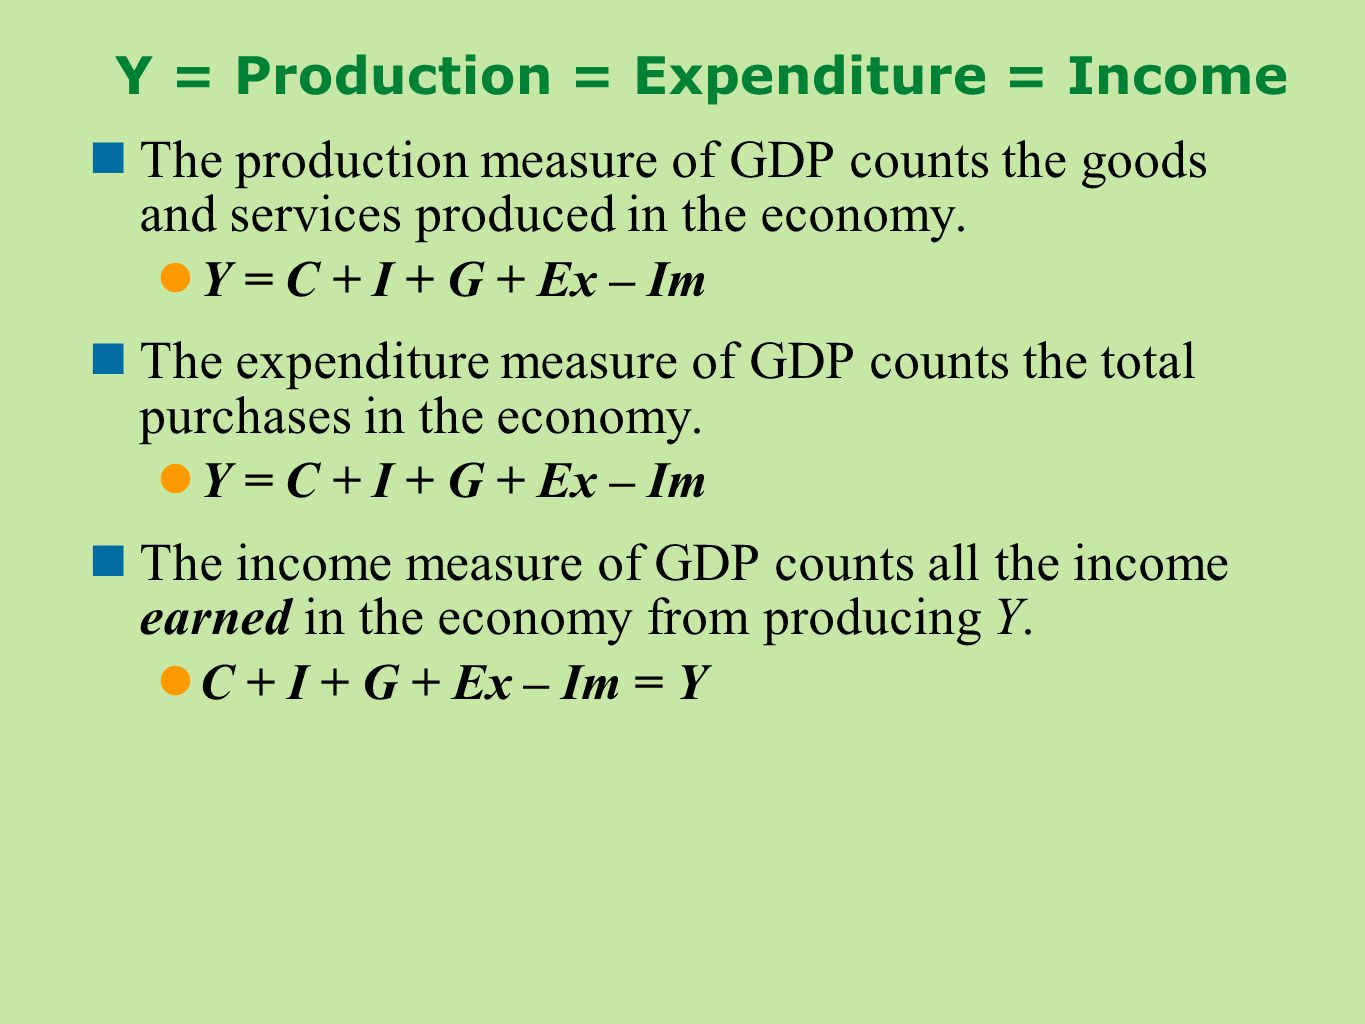 Y = Production = Expenditure = Income